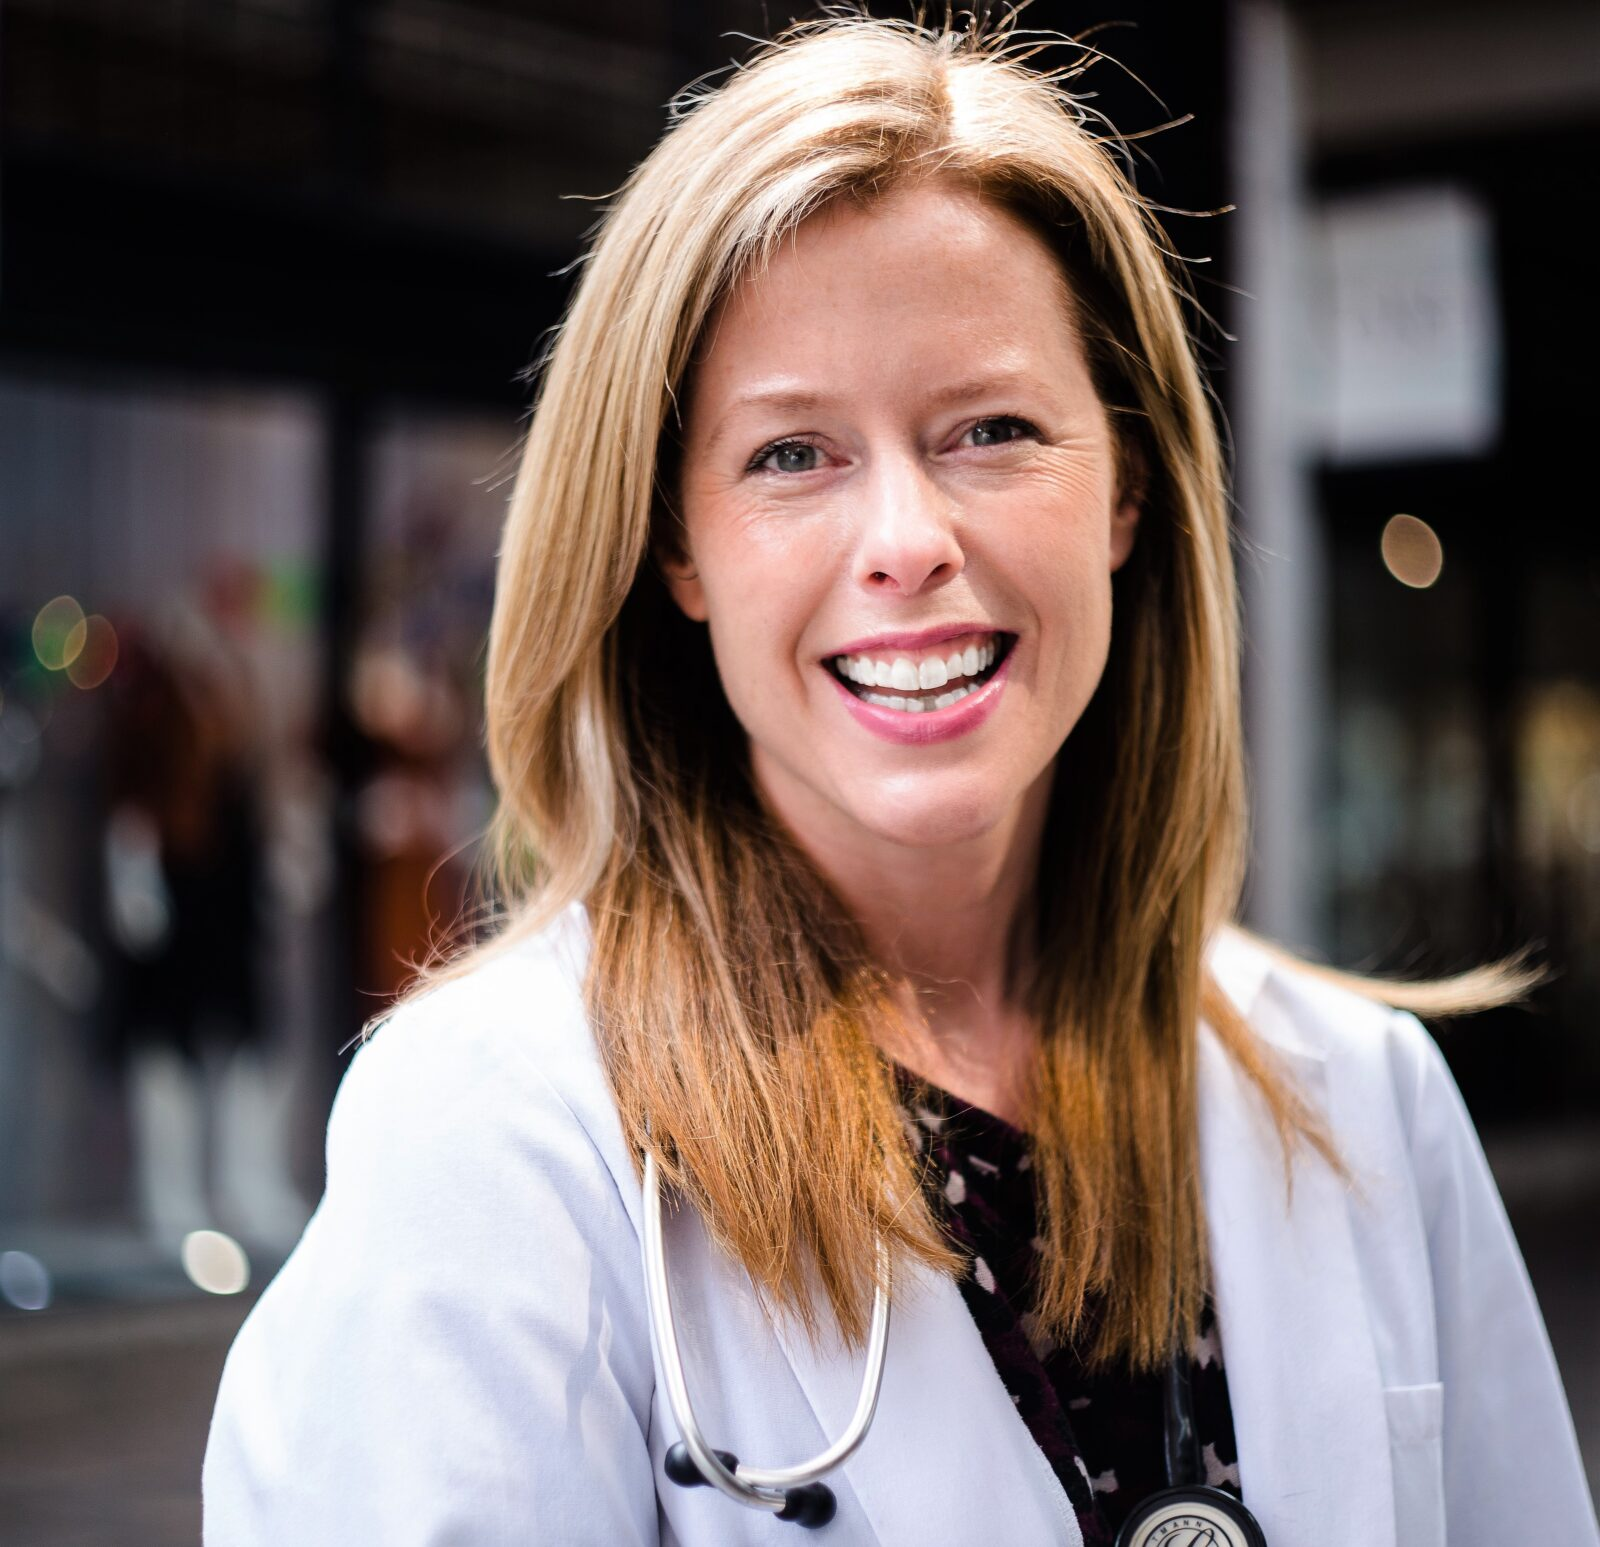 Veterinarian Erin Reid joins Liberty Village Animal Hospital